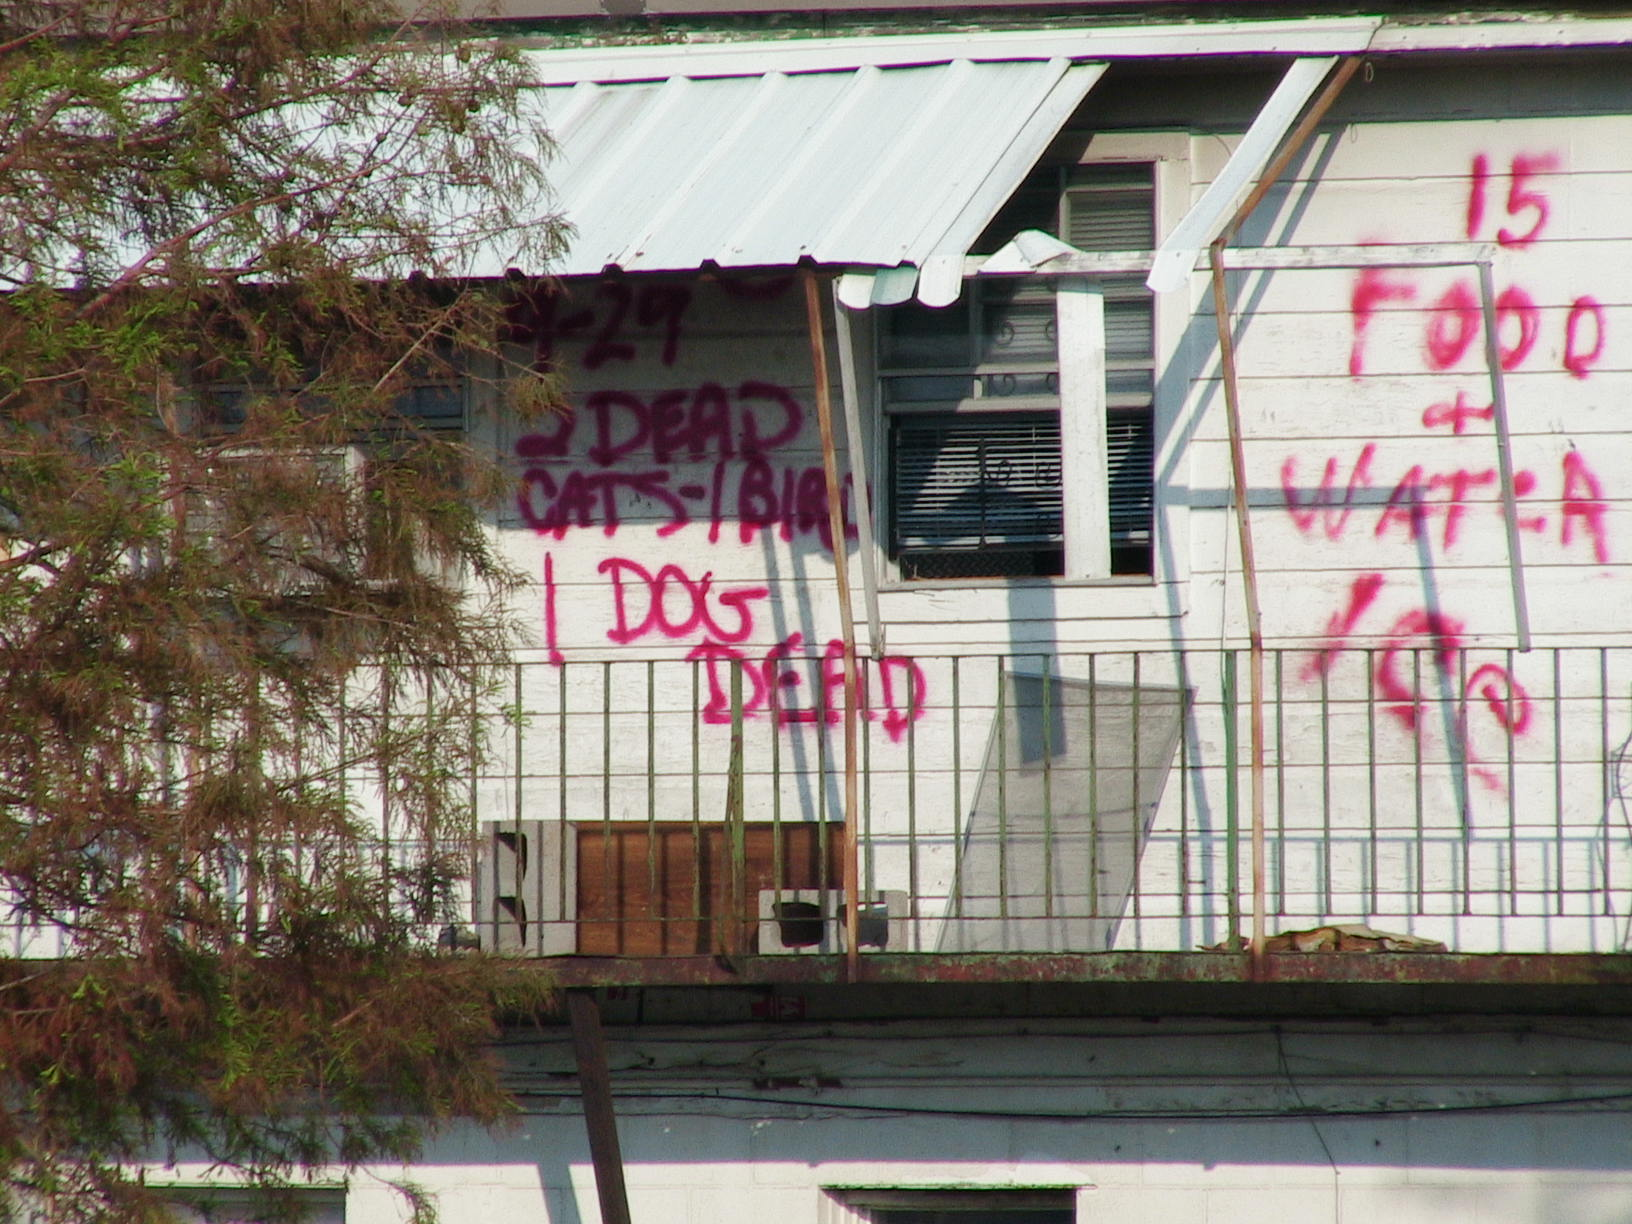 Residents and rescuers communicated with each other by spray painting messages on buildings.